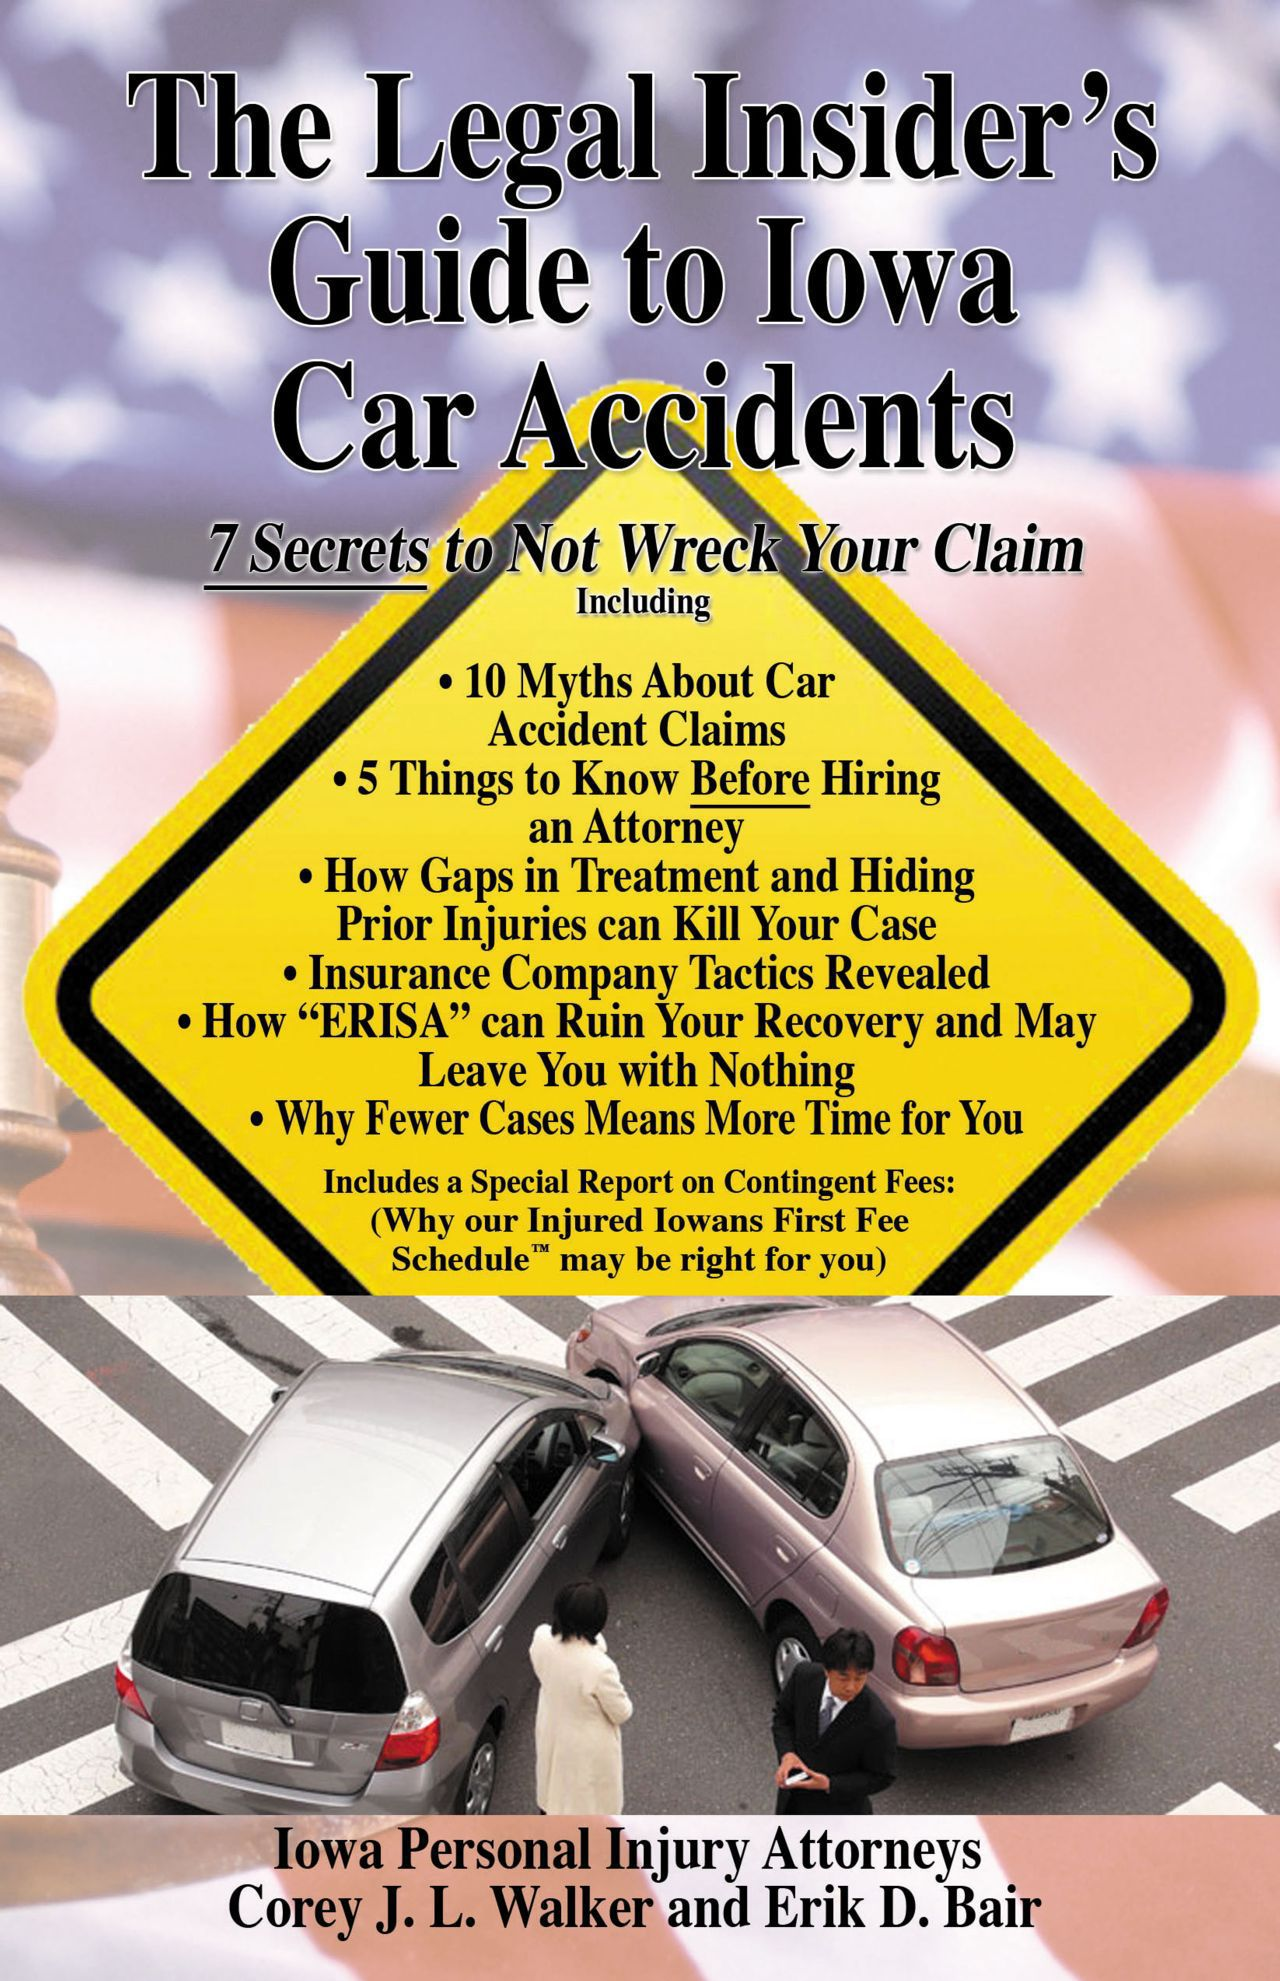 The Legal Insider's Guide to Iowa Car Accidents by Iowa Personal Injury Attorneys Walker Billingsley and Bair